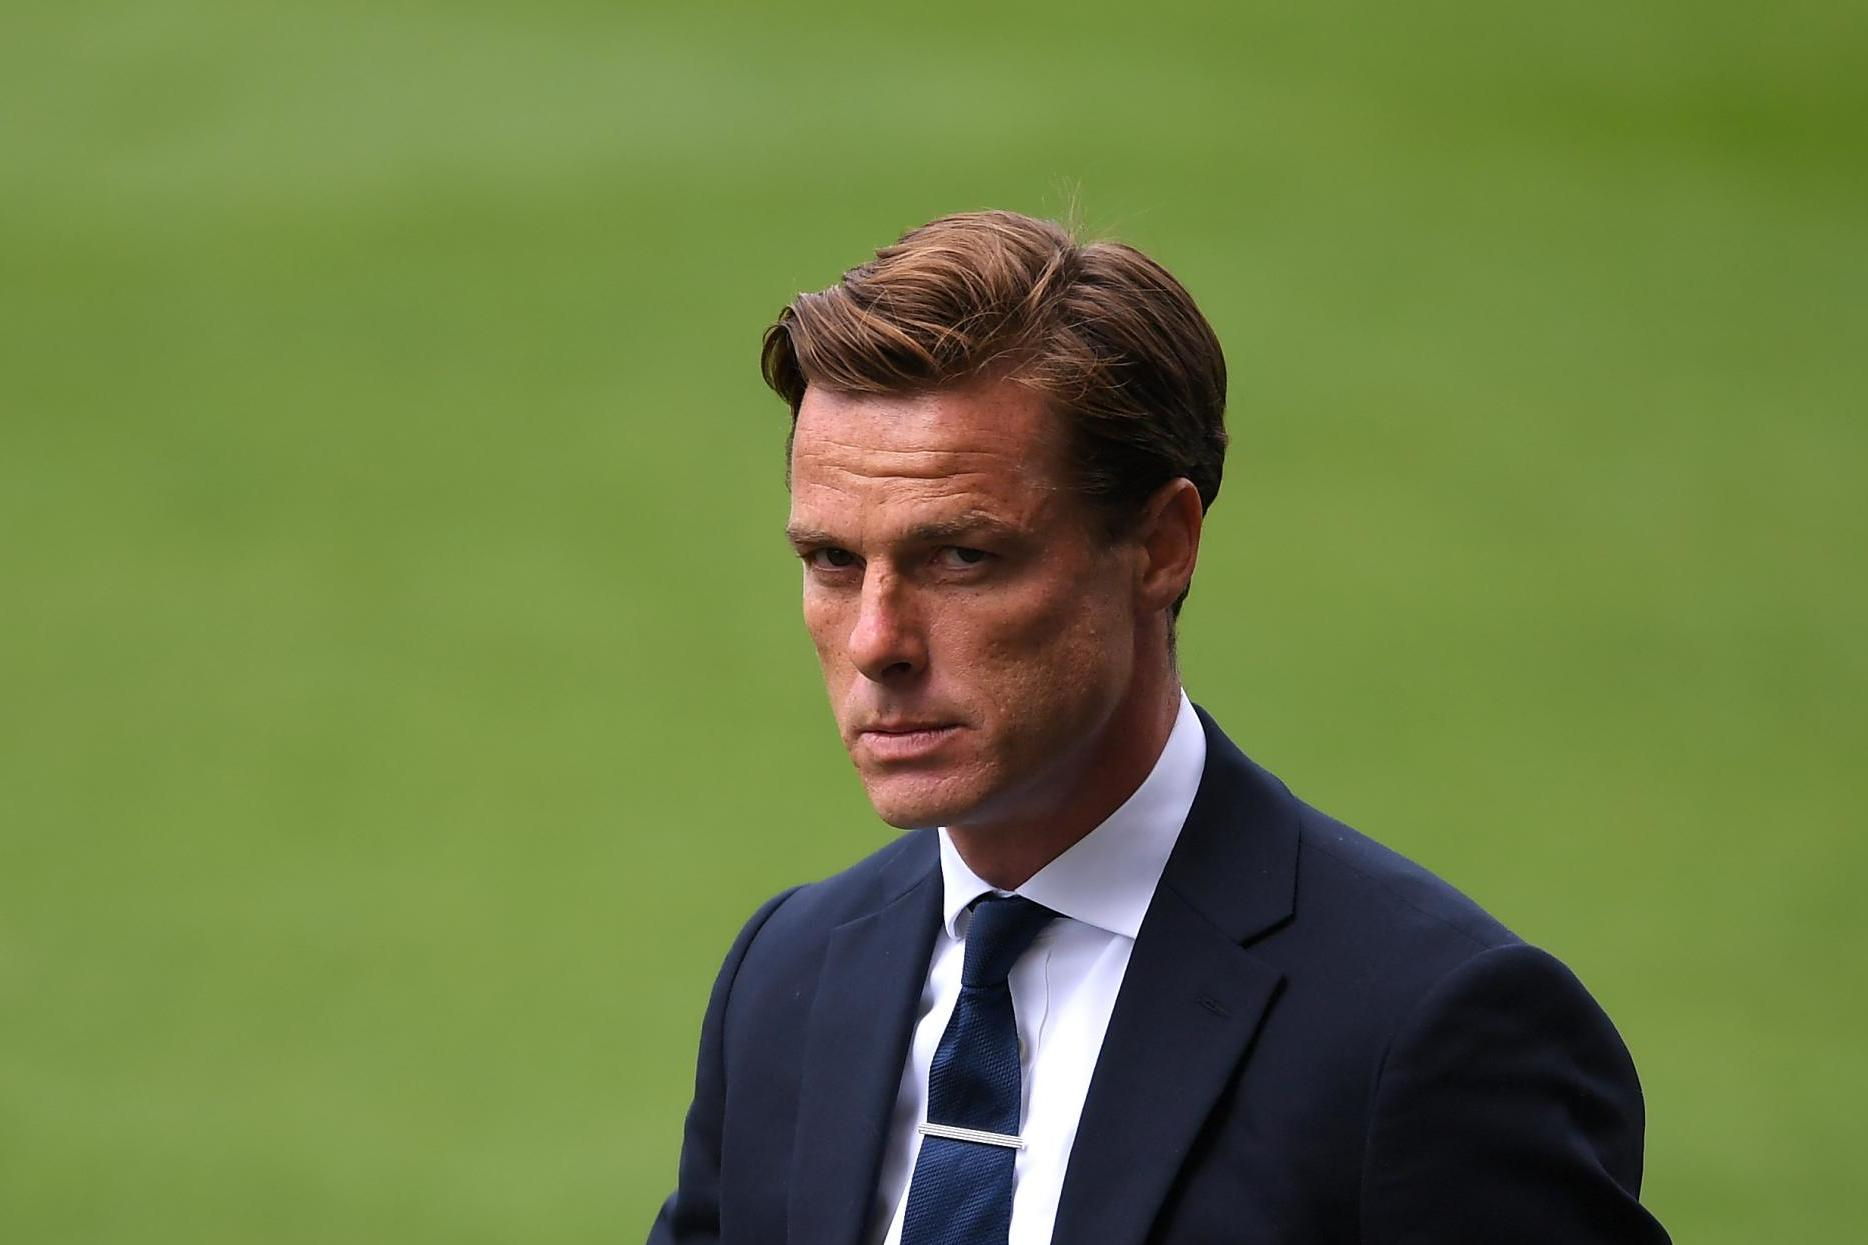 FULHAM BOSS, SCOTT PARKER TO BE REWARDED WITH CONTRACT EXTENSION, SURVIVAL BONUS.